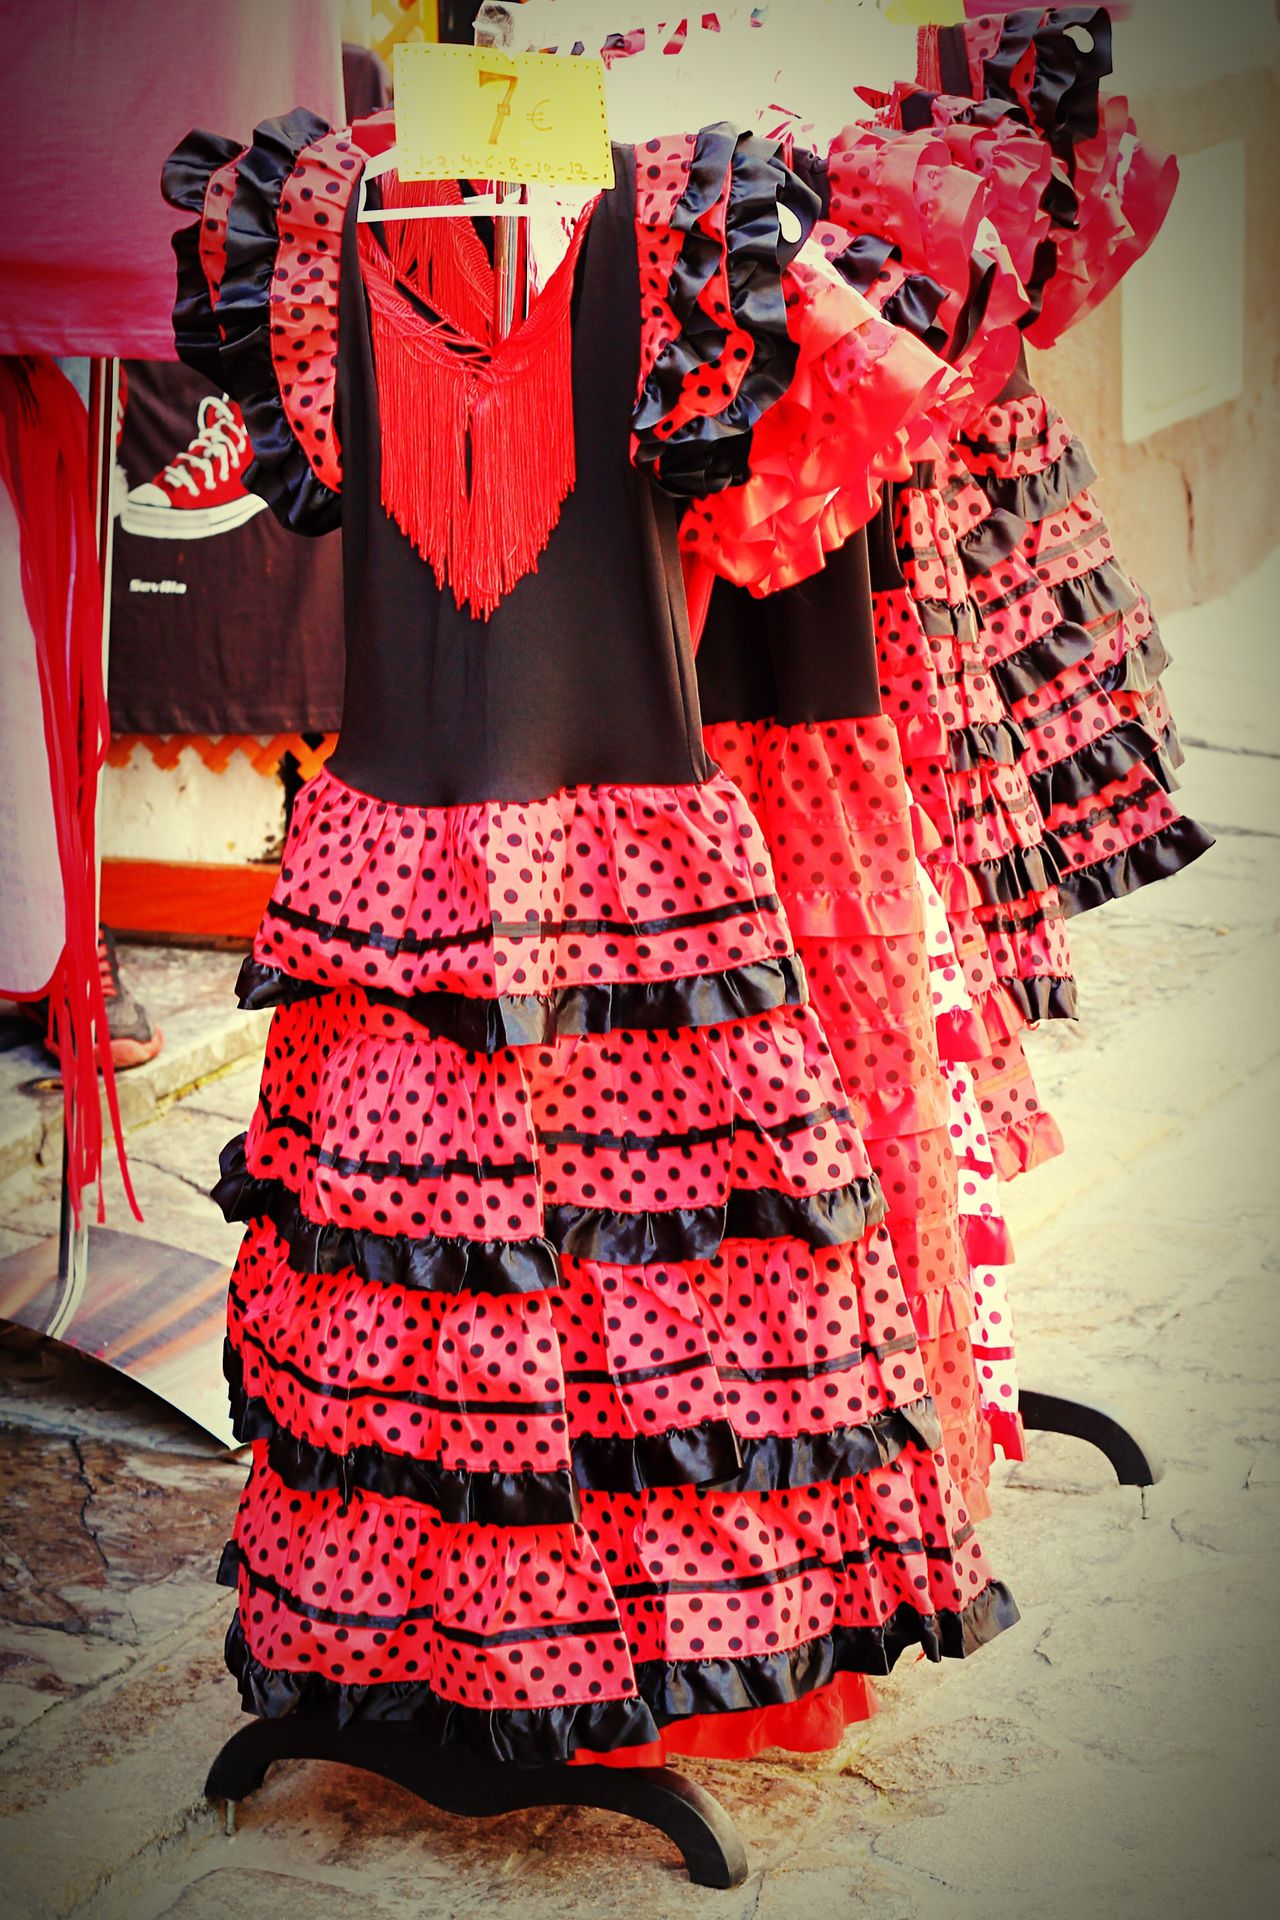 Shopping in Sevilla SPAIN Spain♥ Spain ✈️🇪🇸 Sevilla Travel Traveling Travel Photography Travel Destinations Travelling Folk Folklore Clothes Shop Andalucía Andalusia Dress Typical Dresses